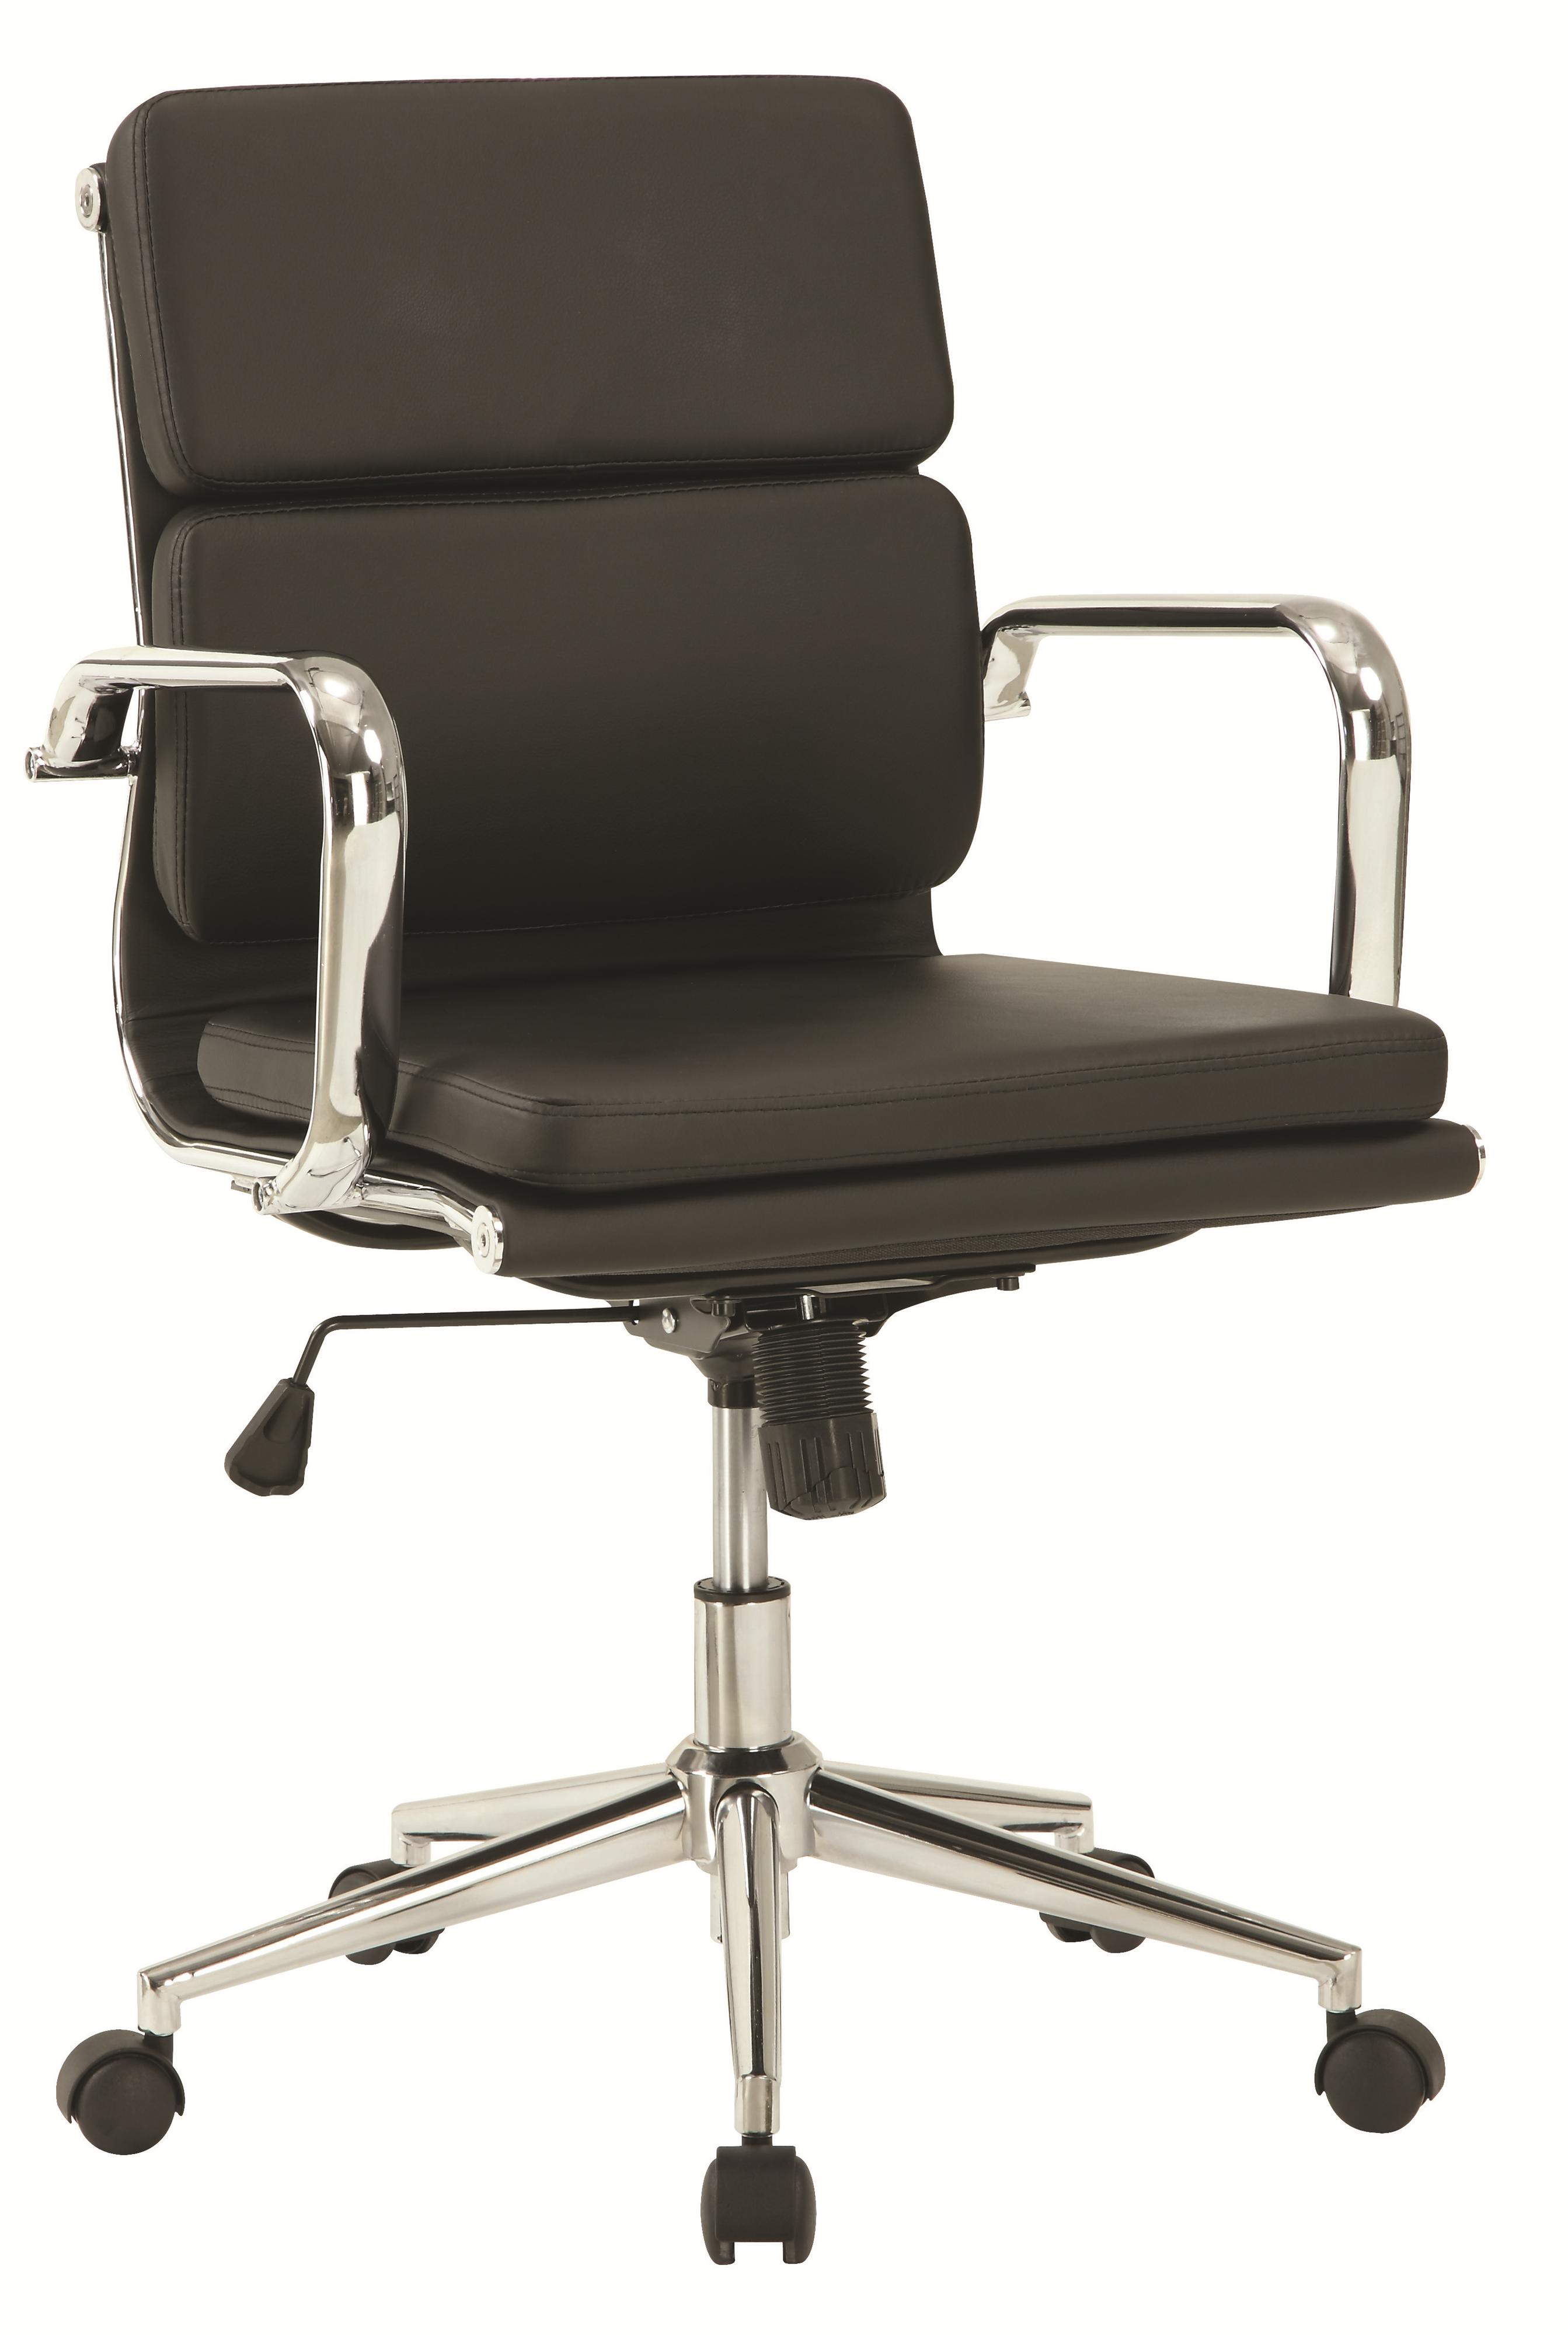 products_coaster_color_office chairs_800838-b0